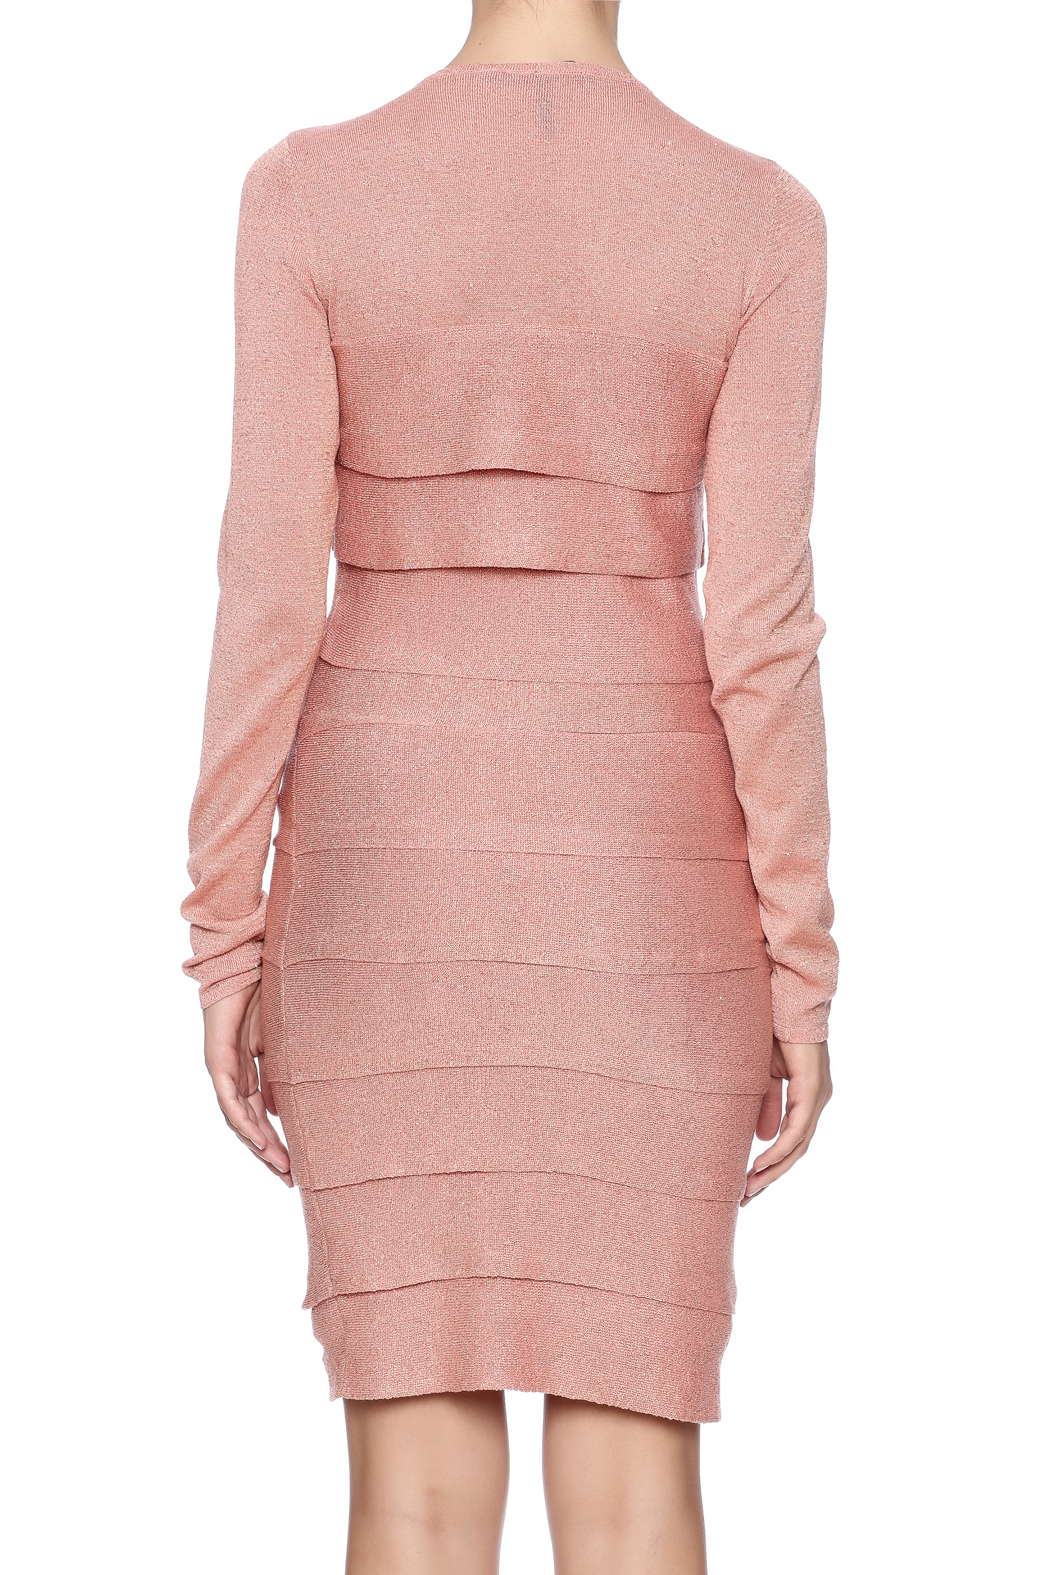 BCBG Max Azria Mariah Dress - Back Cropped Image